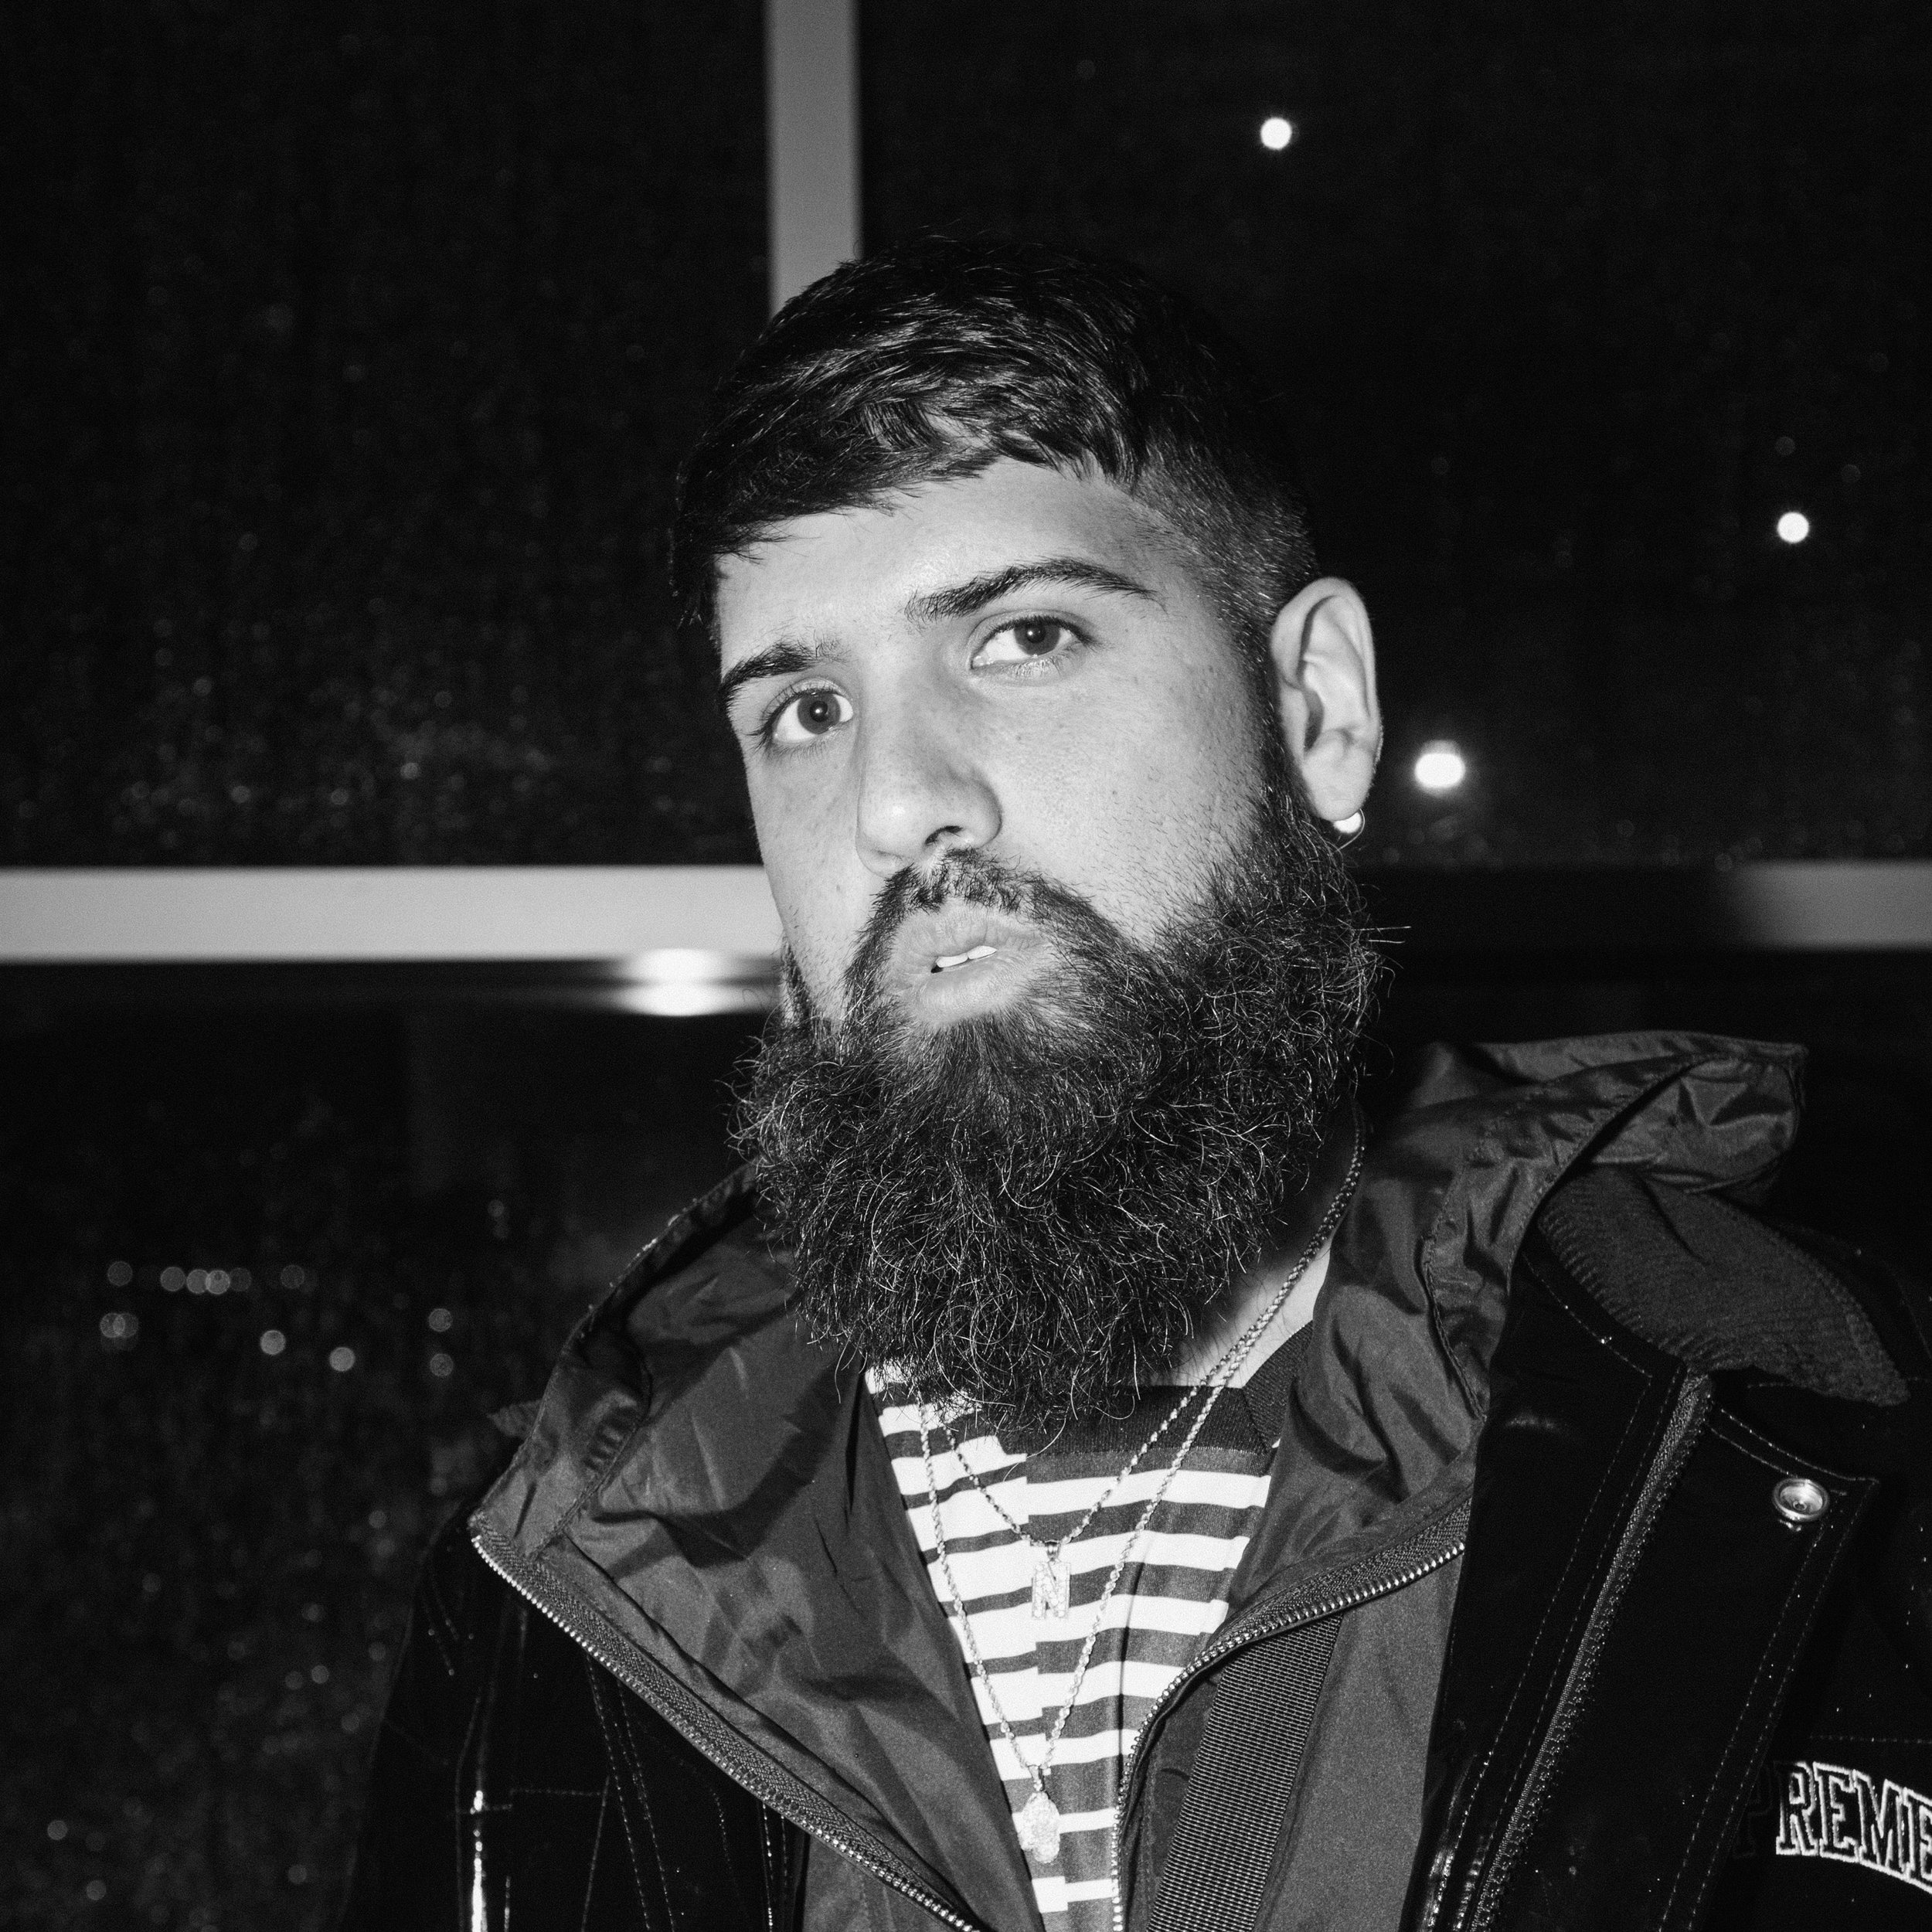 Naveed Hassan   Artist Manager, MDDN   Naveed is an artist manager at MDDN - a management and media company in LA founded by Joel and Benji Madden. Naveed also co-heads BLK MTN, an artist incubator and production studio that has nurtured artists like Sheck Wes, K Camp, Masego, and De'Wayne Jackson, and executed creative for clients that include VFiles, Major Lazer, Camila Cabello, Clean Bandit, and Alina Baraz. Naveed spent two years at ICM Partners as an agent trainee after earning a J.D. from the Temple University Beasley School of Law and a B.A. from the University of North Carolina at Chapel Hill.